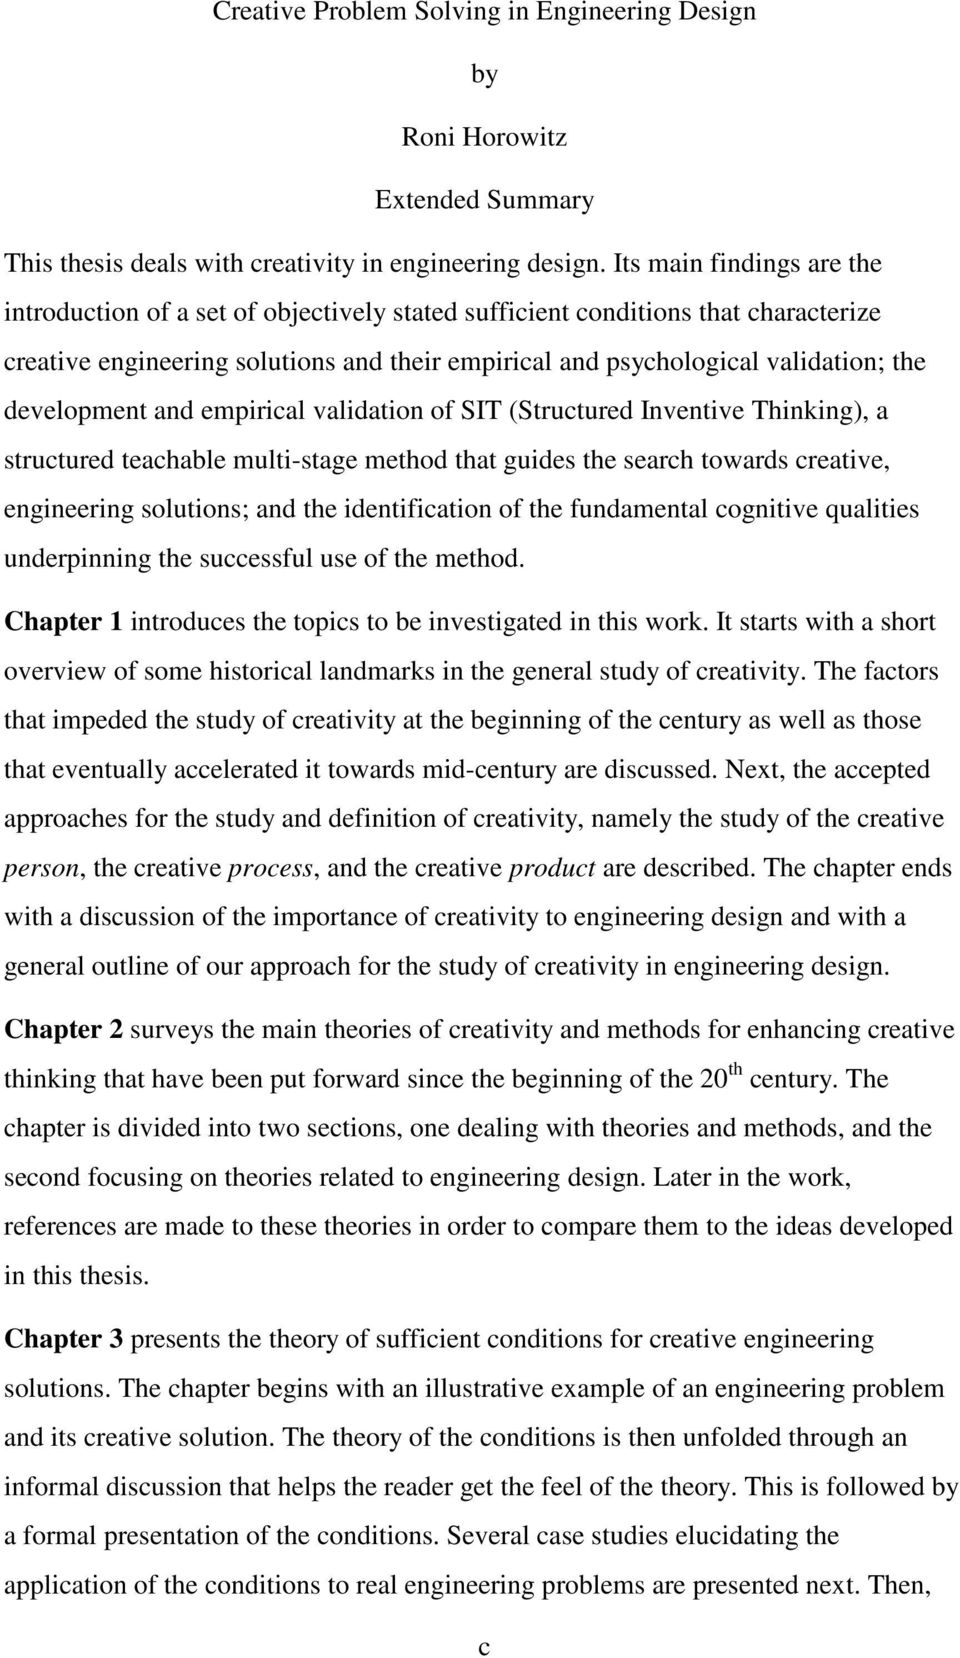 development and empirical validation of SIT (Structured Inventive Thinking), a structured teachable multi-stage method that guides the search towards creative, engineering solutions; and the